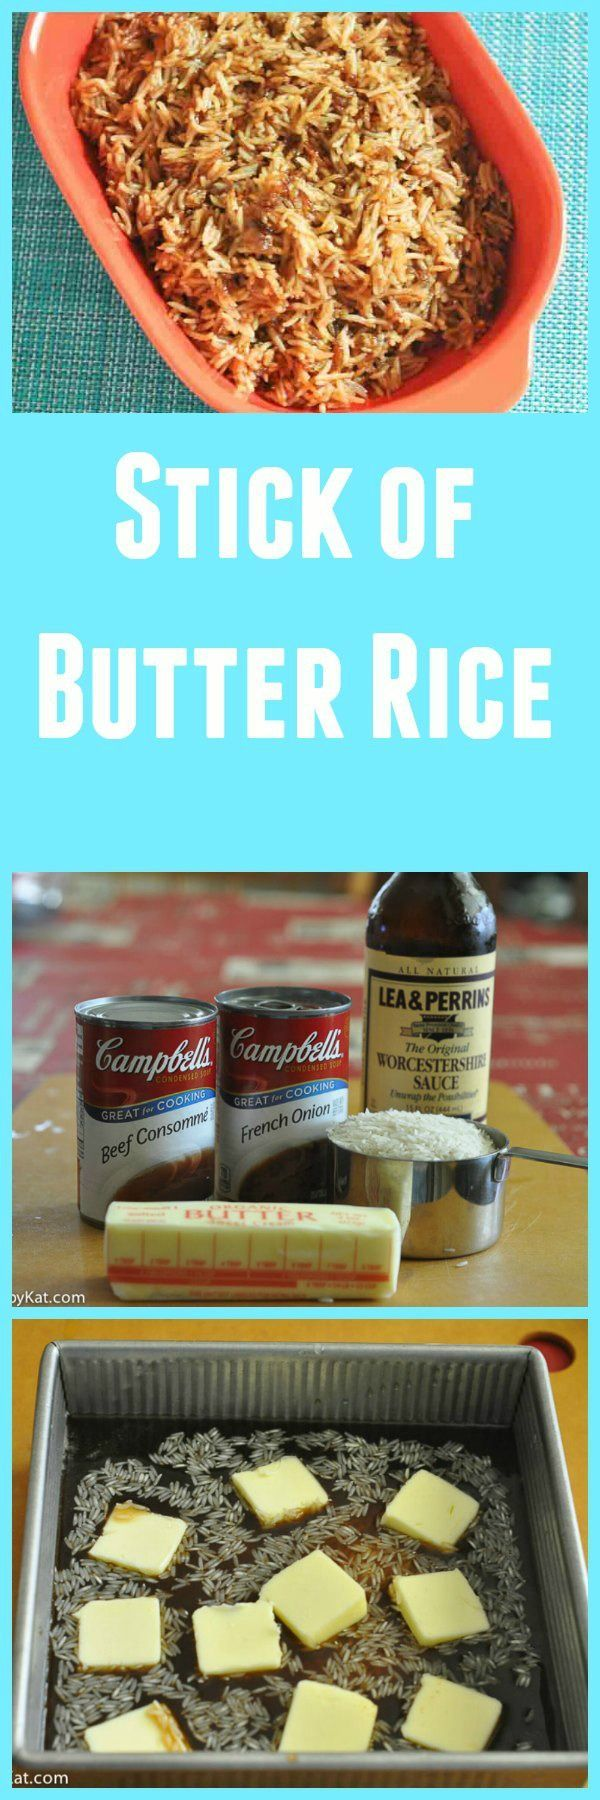 316 best ~Rice & Orzo~ images on Pinterest | Cooking food ...